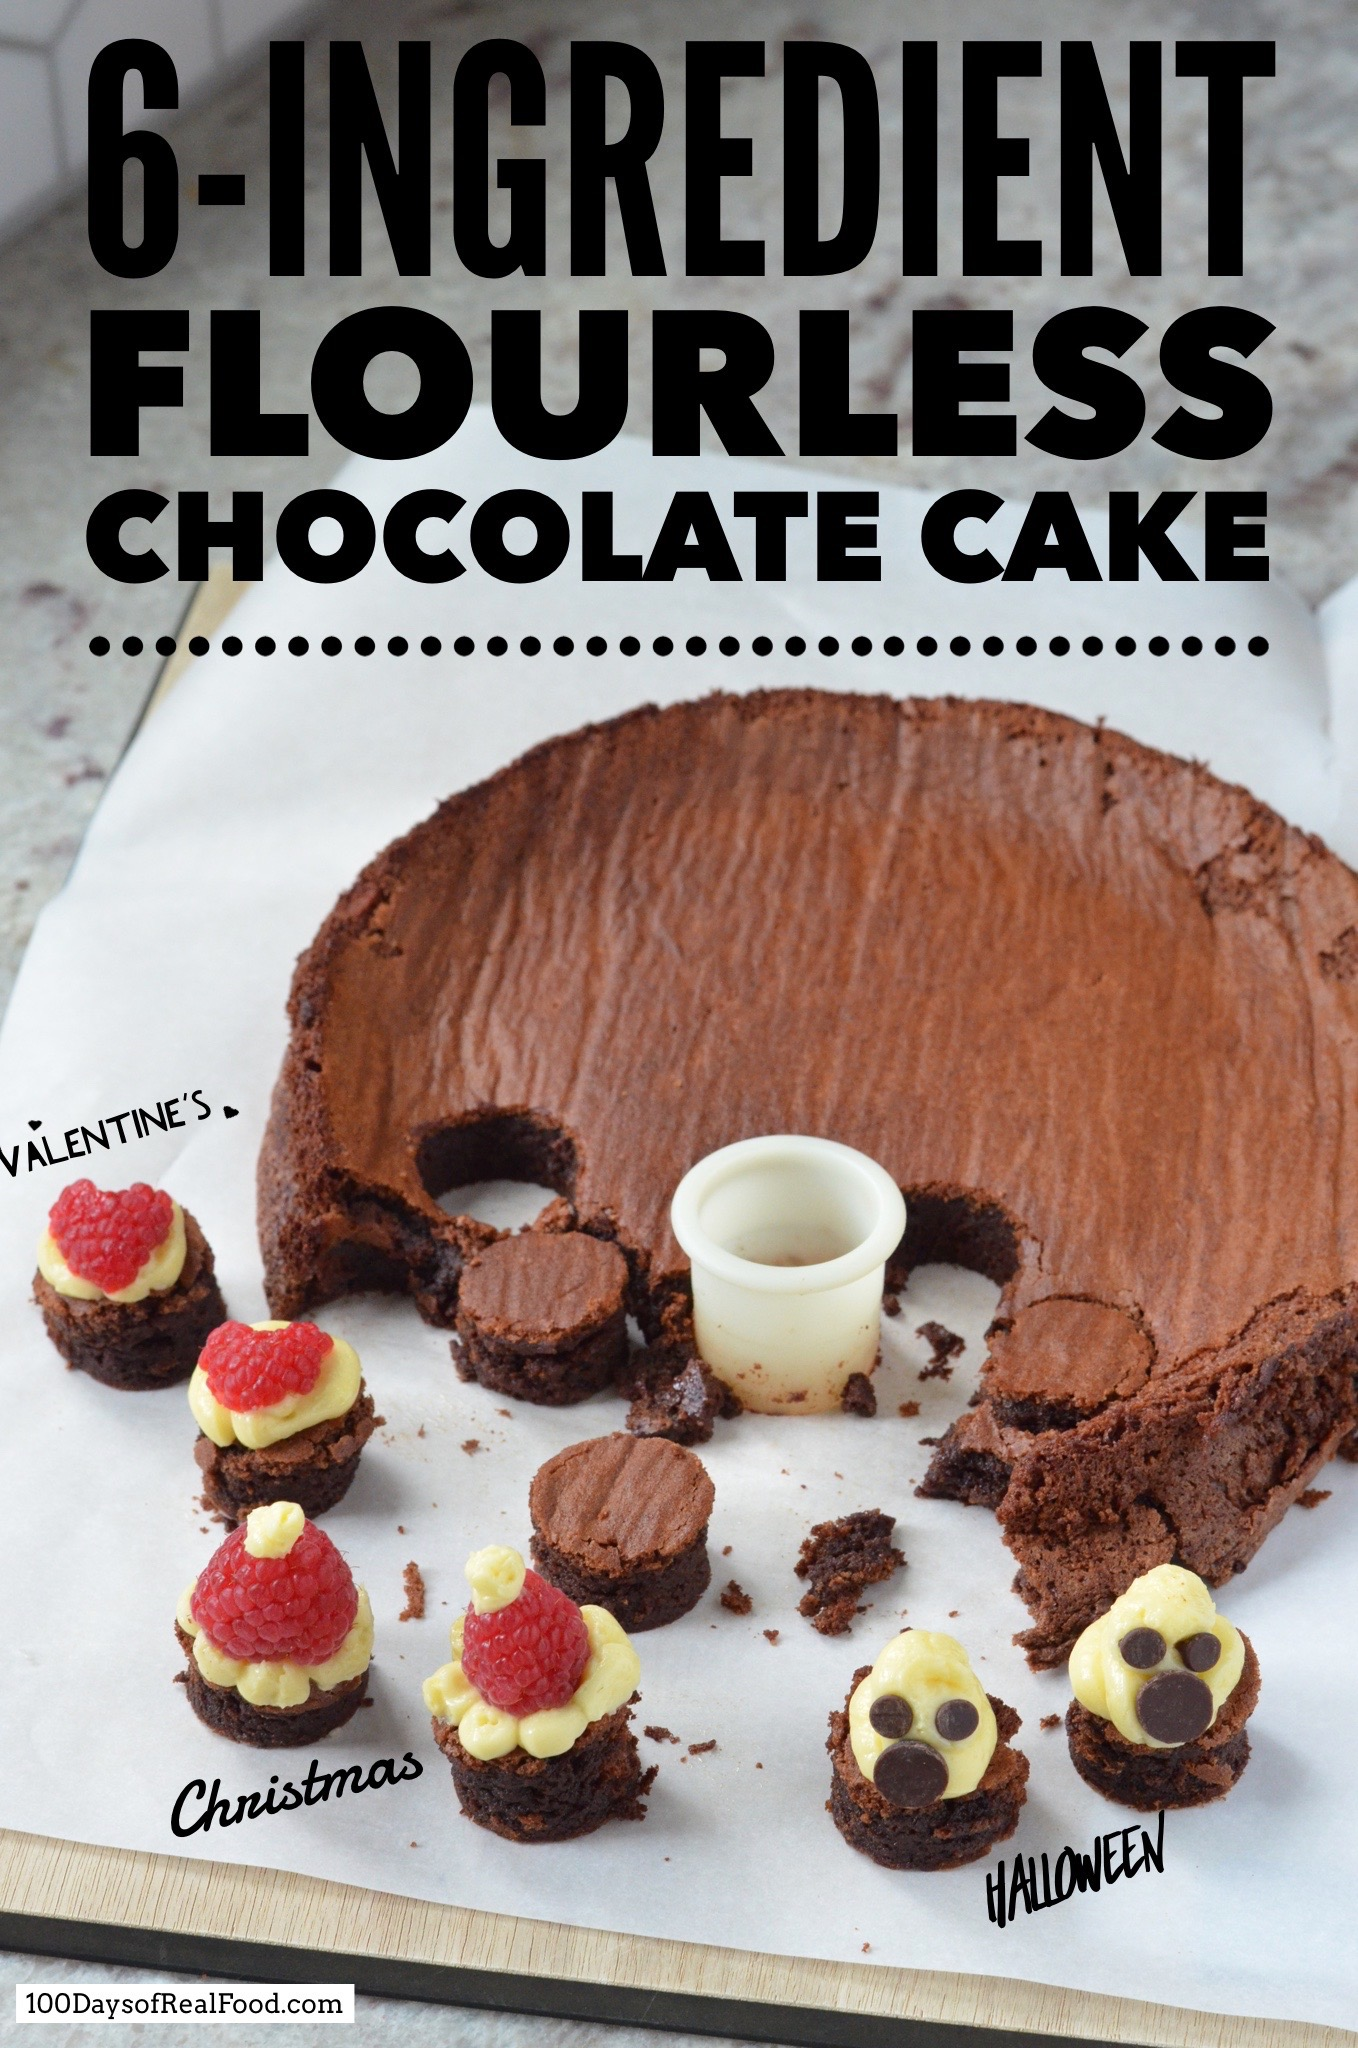 6-ingredient flourless chocolate cake